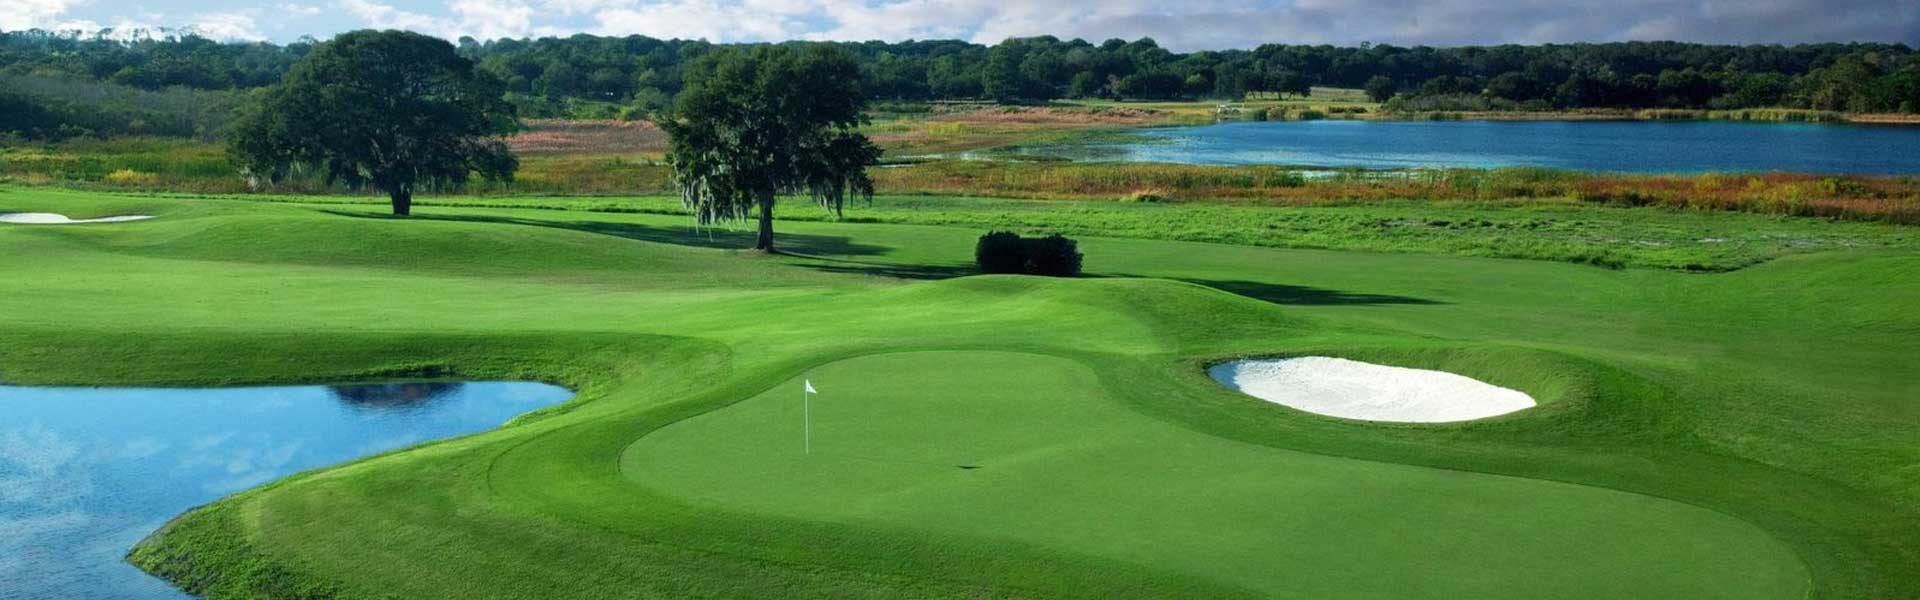 MetroWest Golf Club Orlando